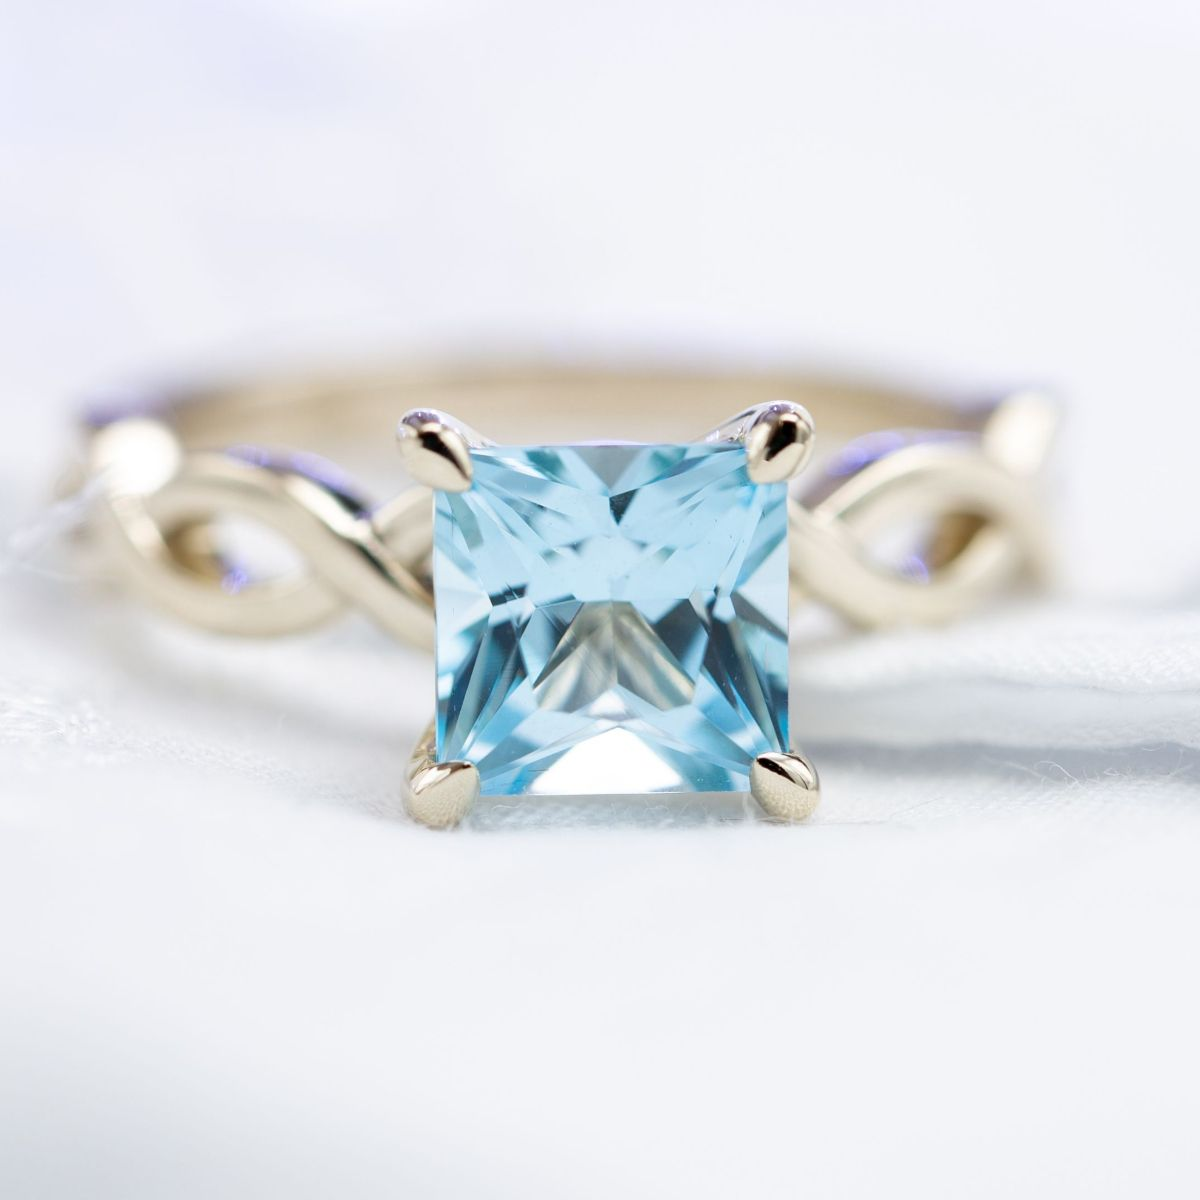 topaz solitaire with twisting band - engagement ring setting